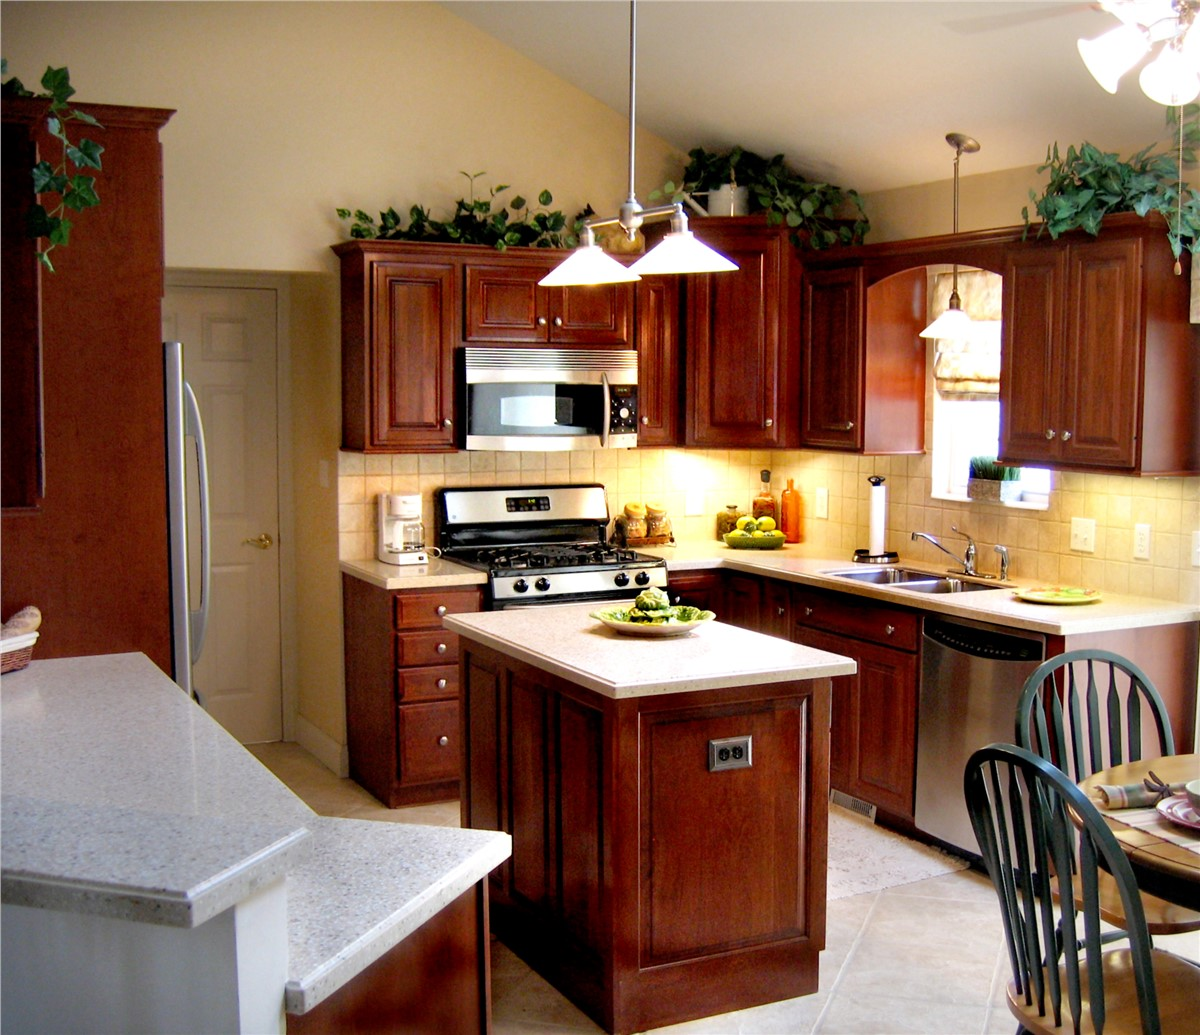 Kissimmee Kitchen Cabinet Refacing Company Fhia